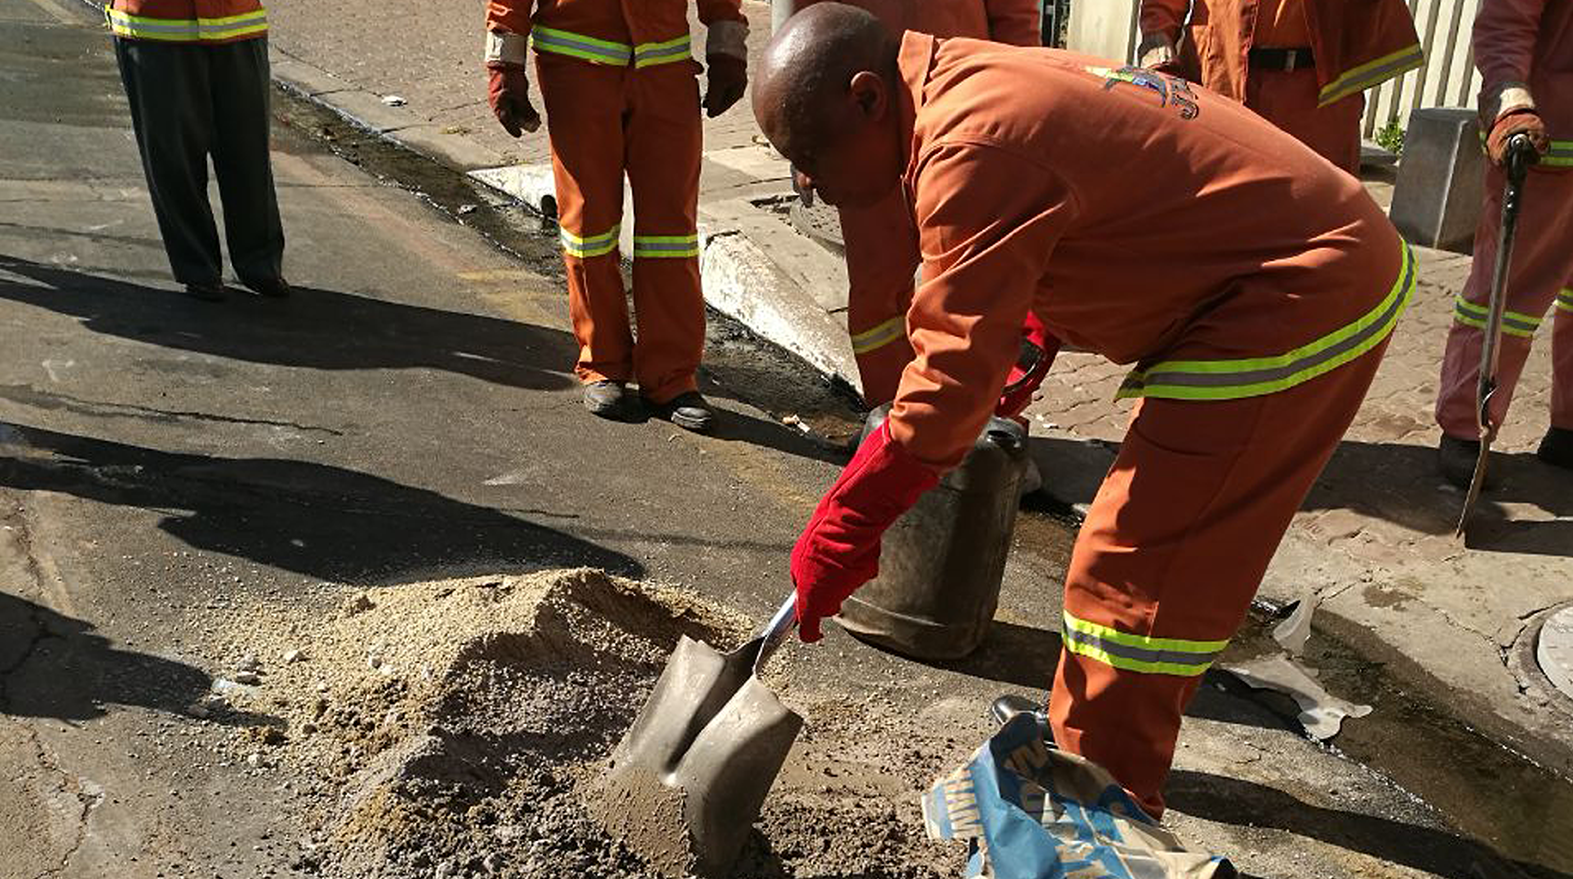 Getting on with repairs – for a safer city.